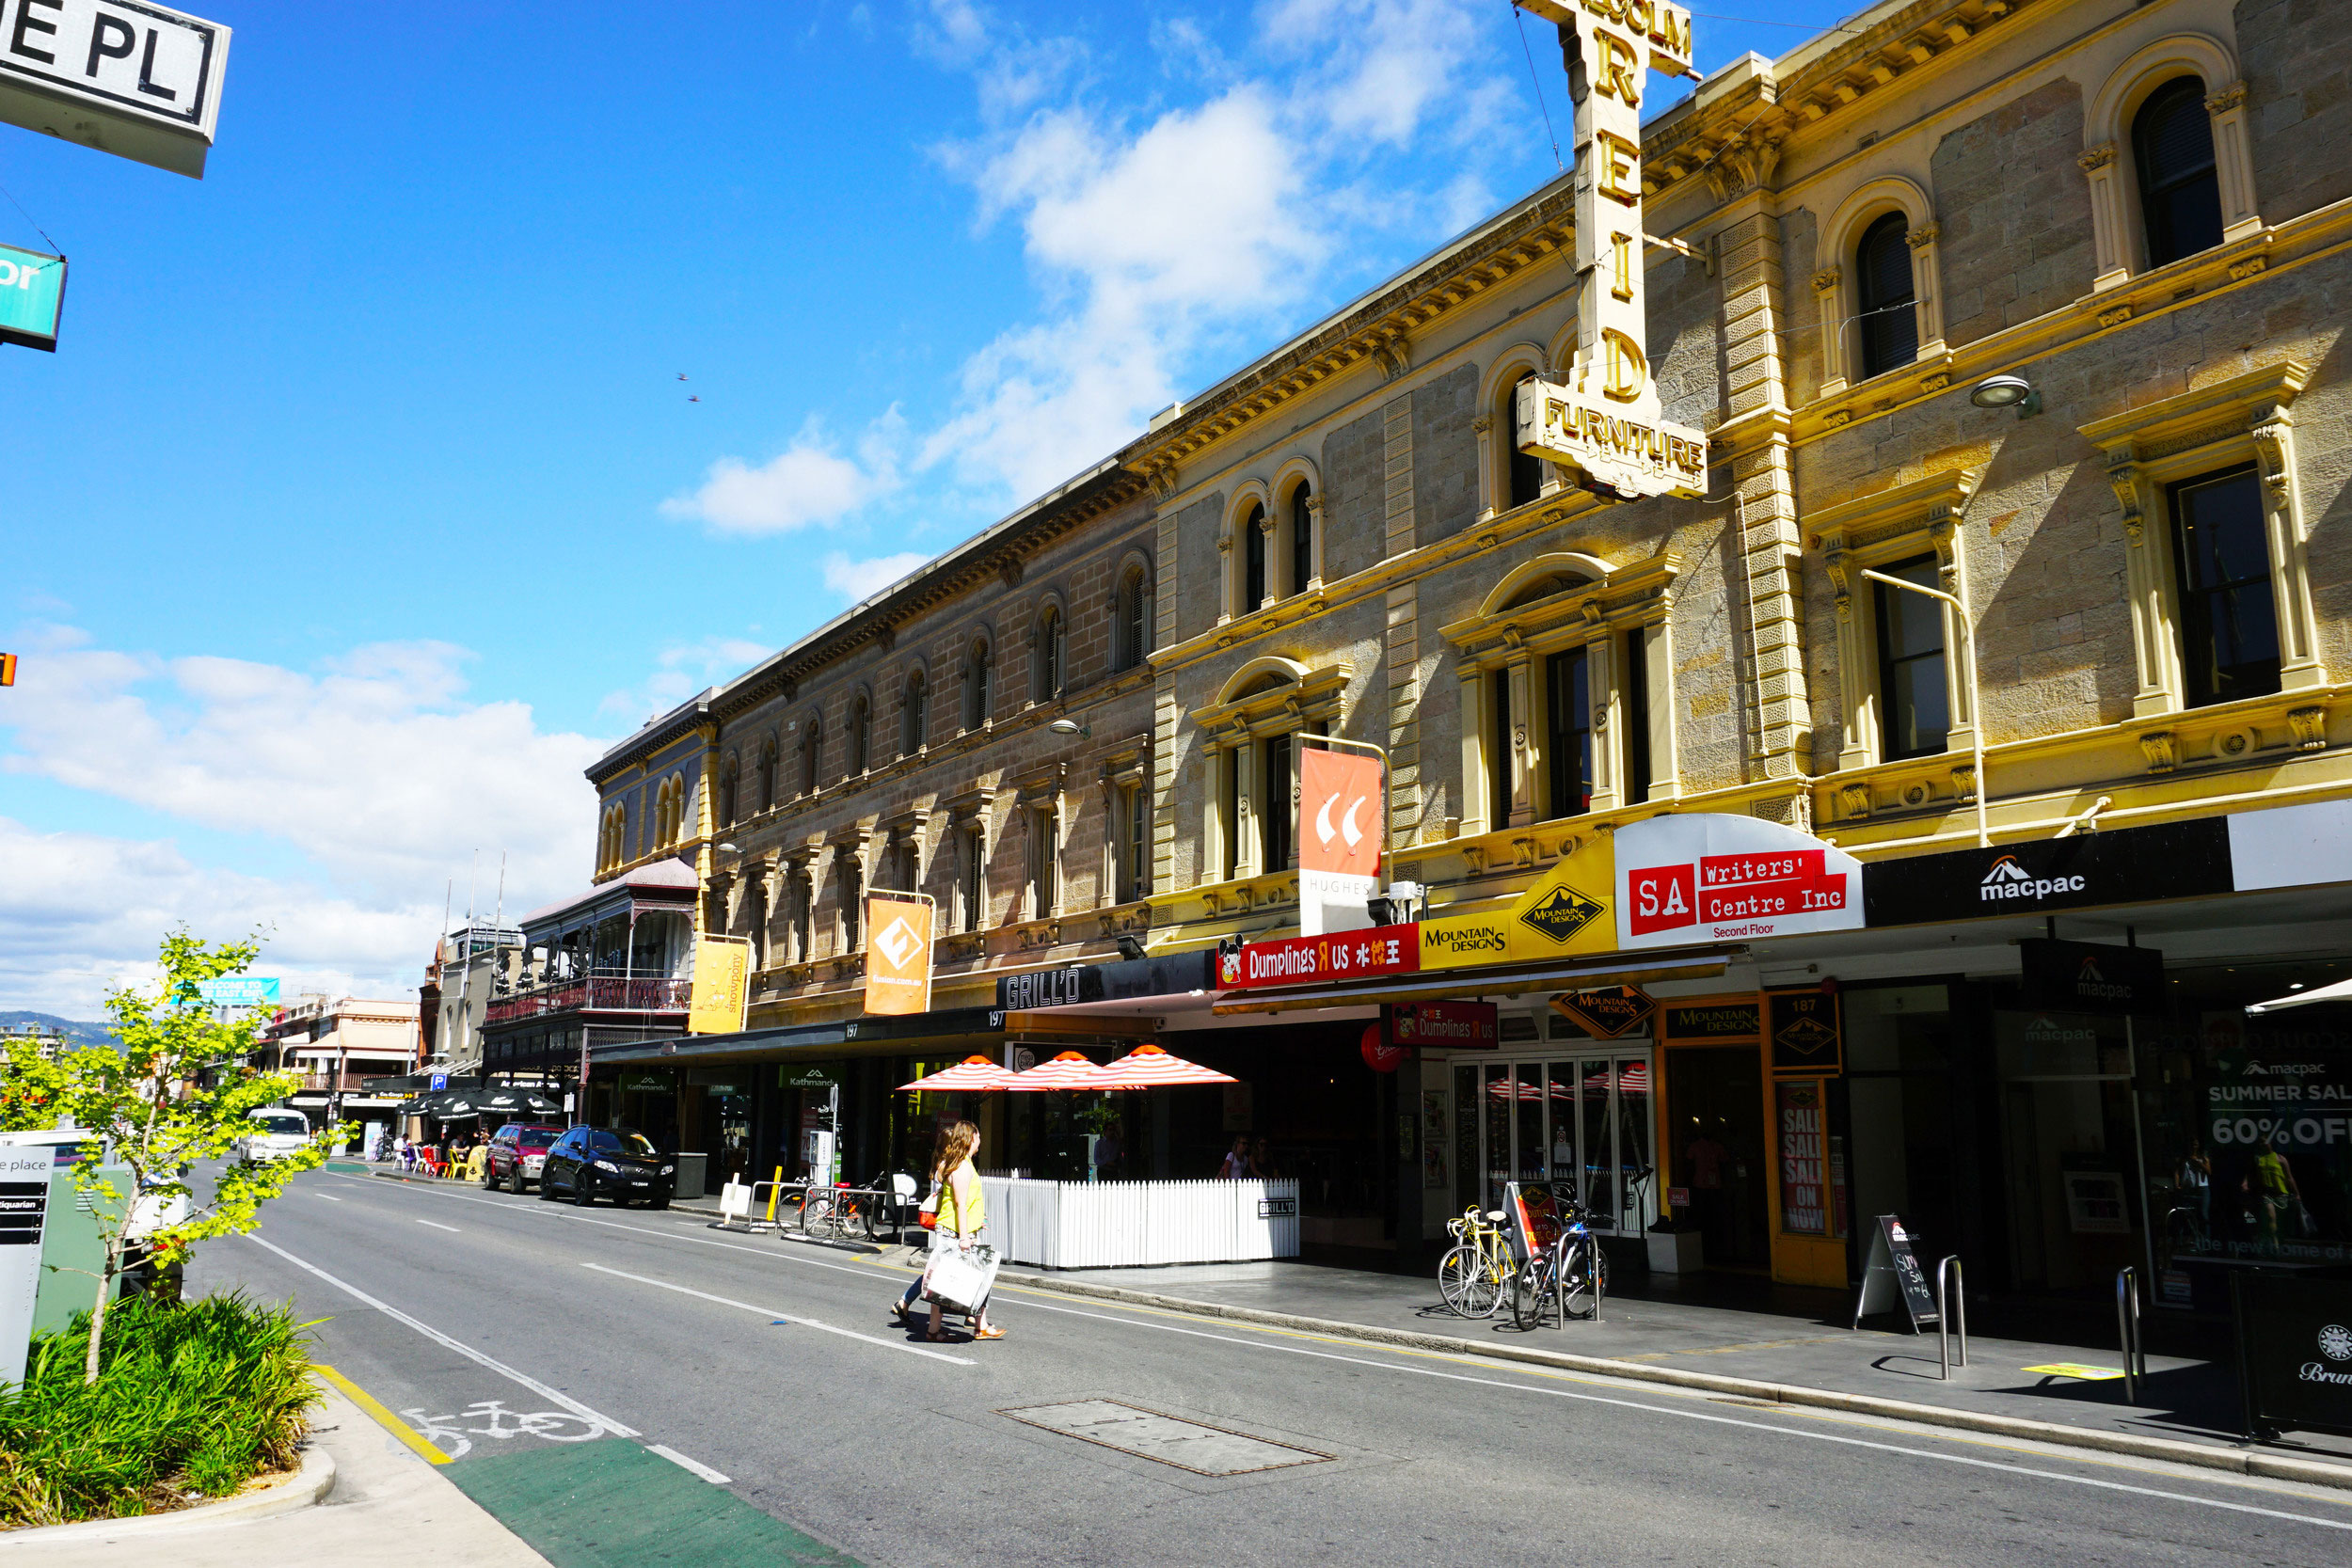 Hayborough building is one of Rundle Street's architectural icons